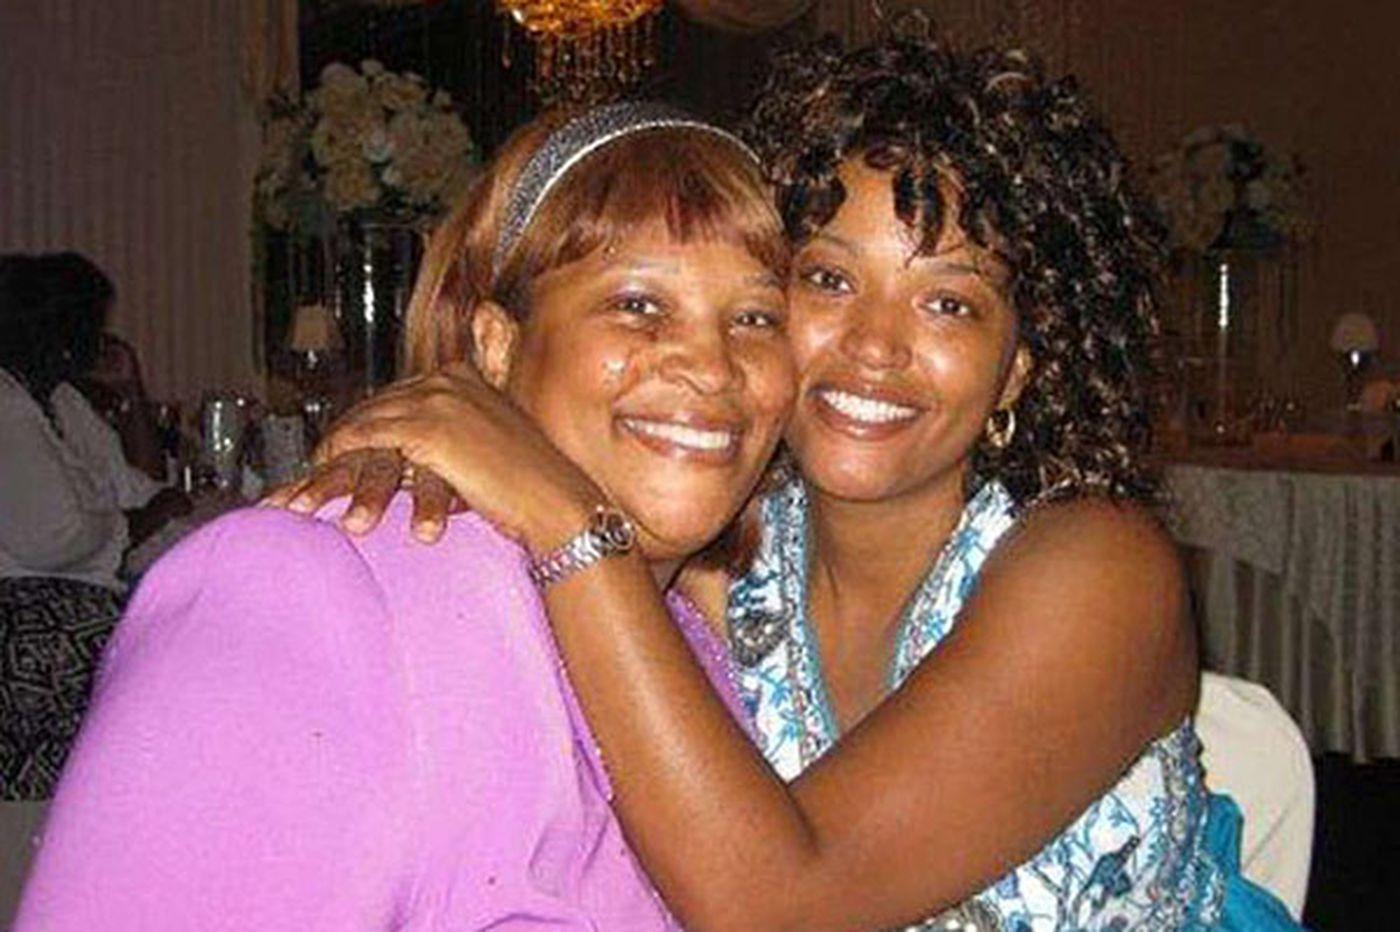 Family mourns woman slain in murder-suicide